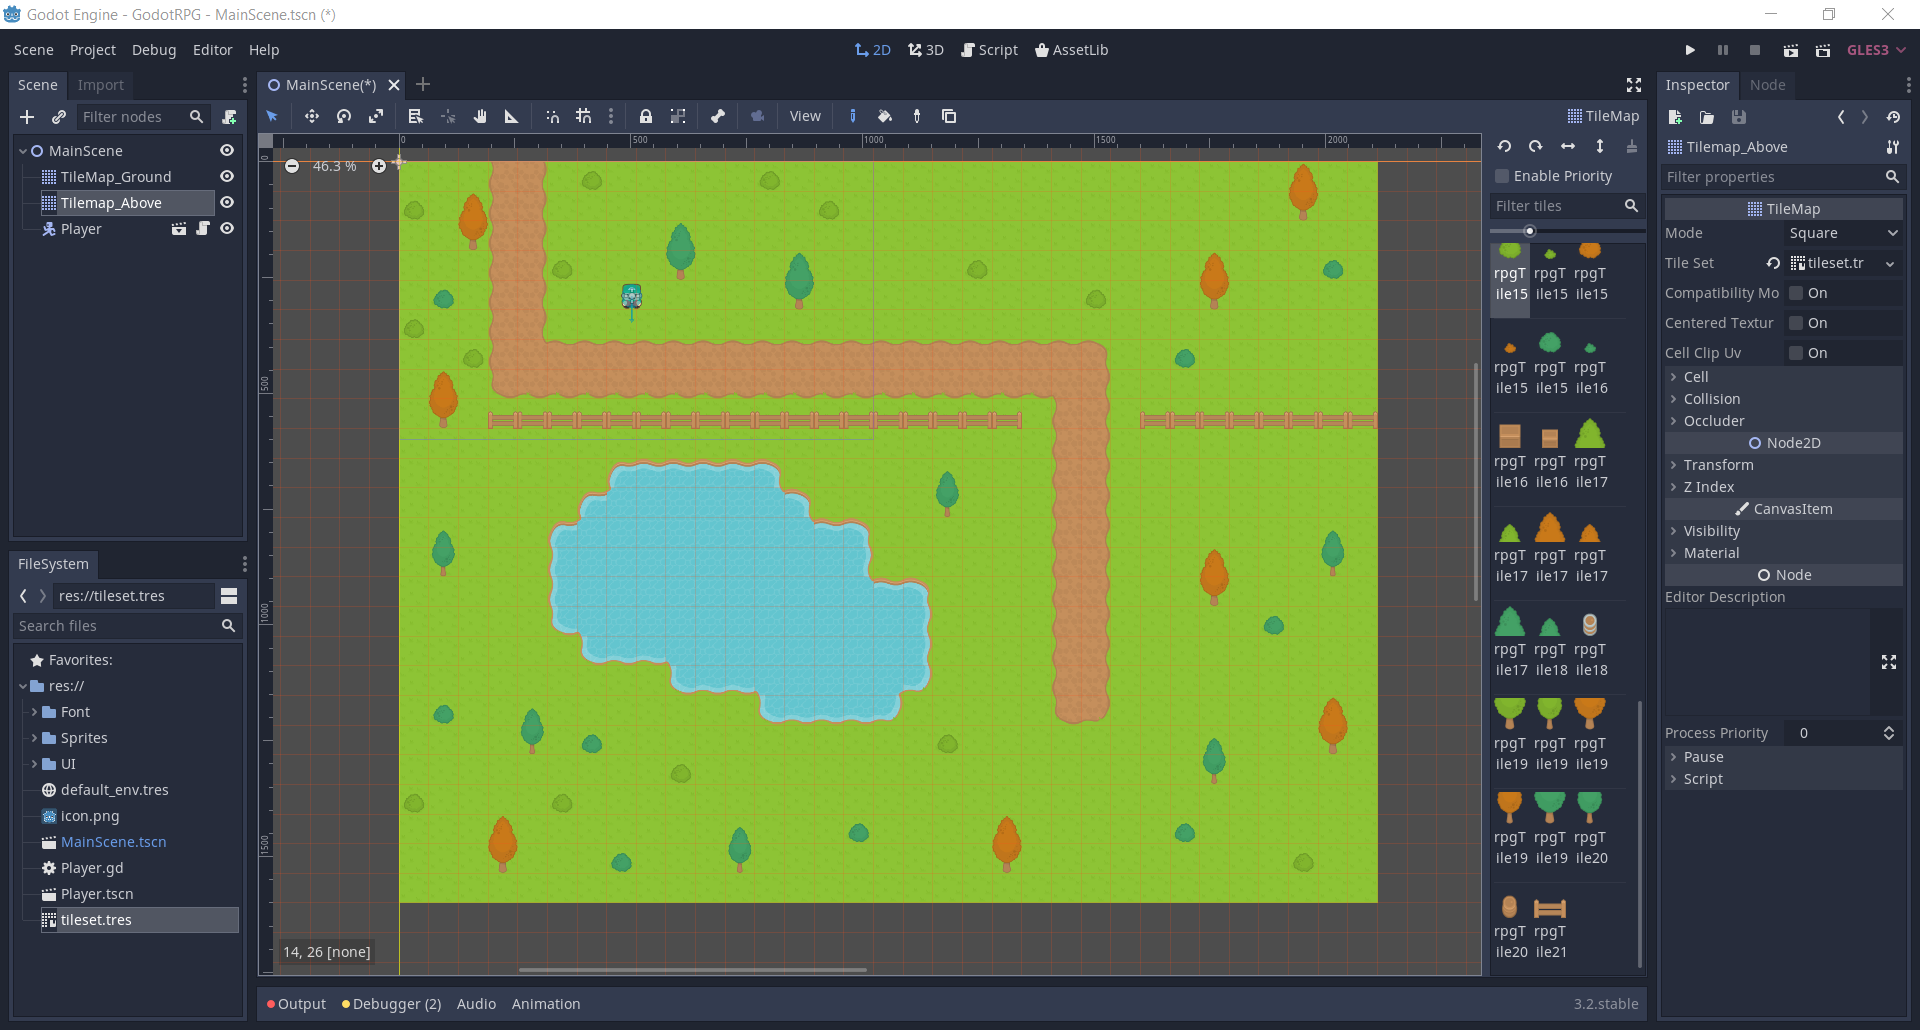 Godot 2D RPG project with player and completed tilemap